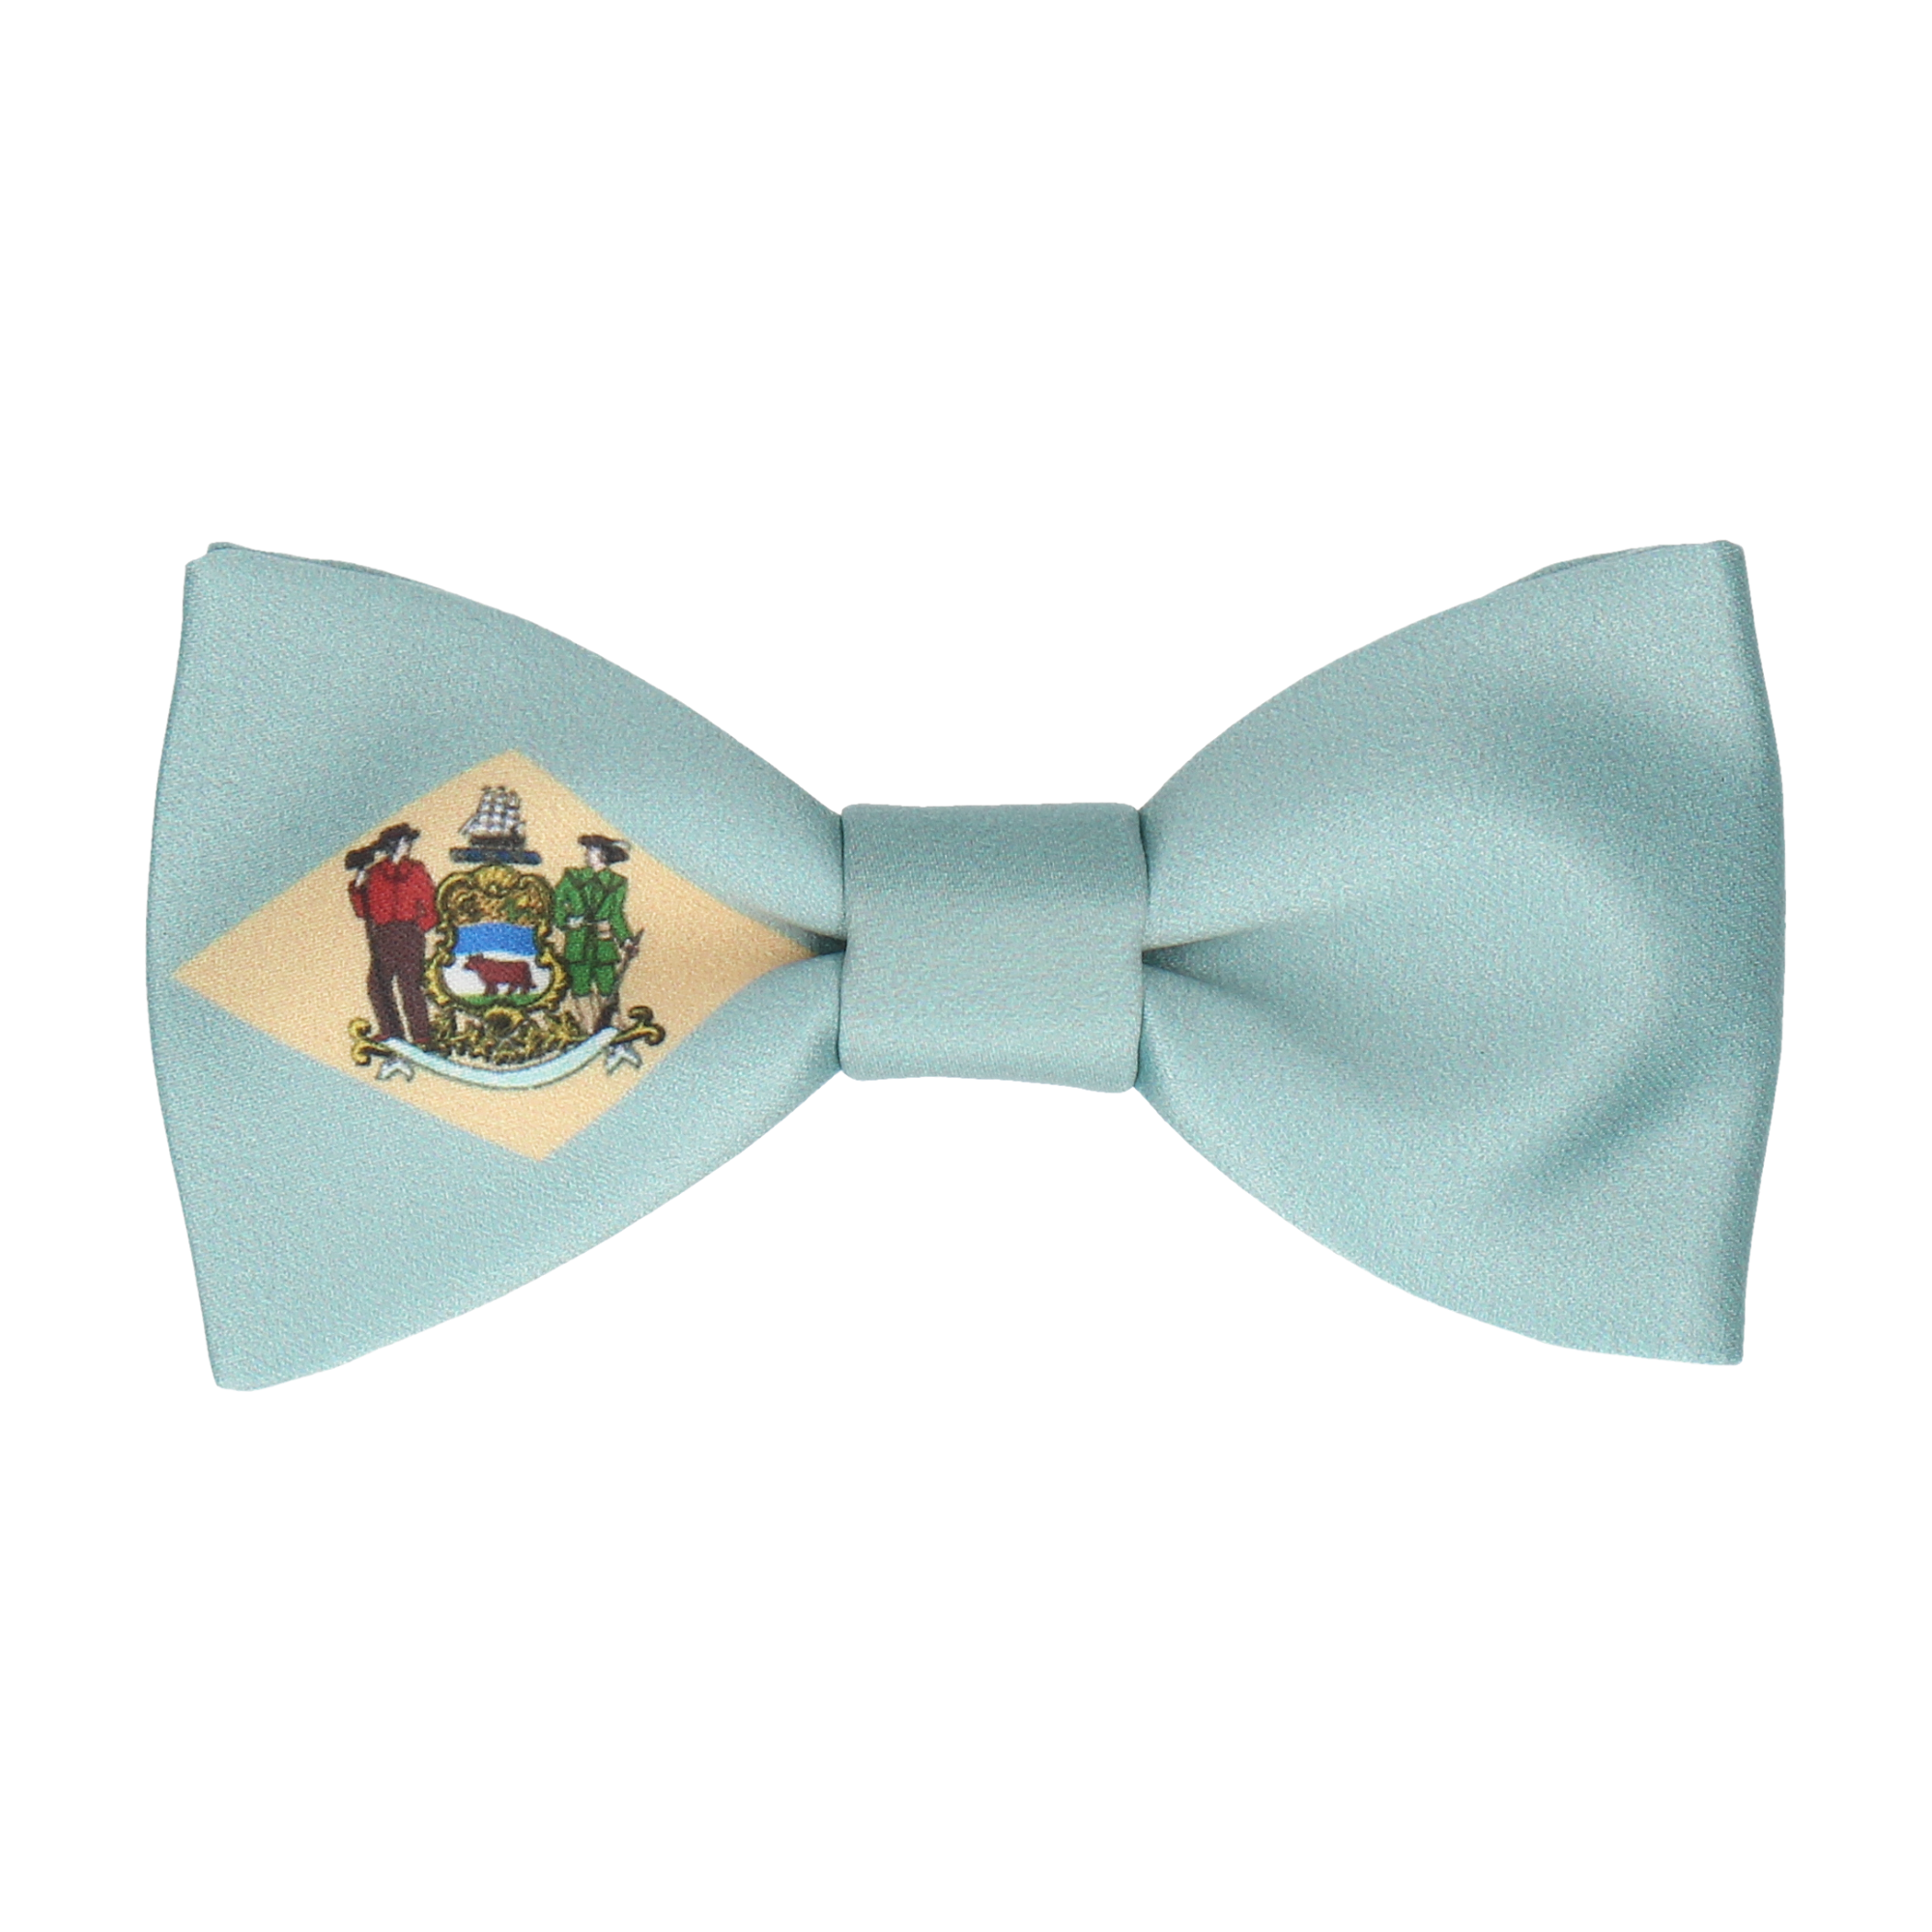 U.S. State Flag of Delaware Bow Tie